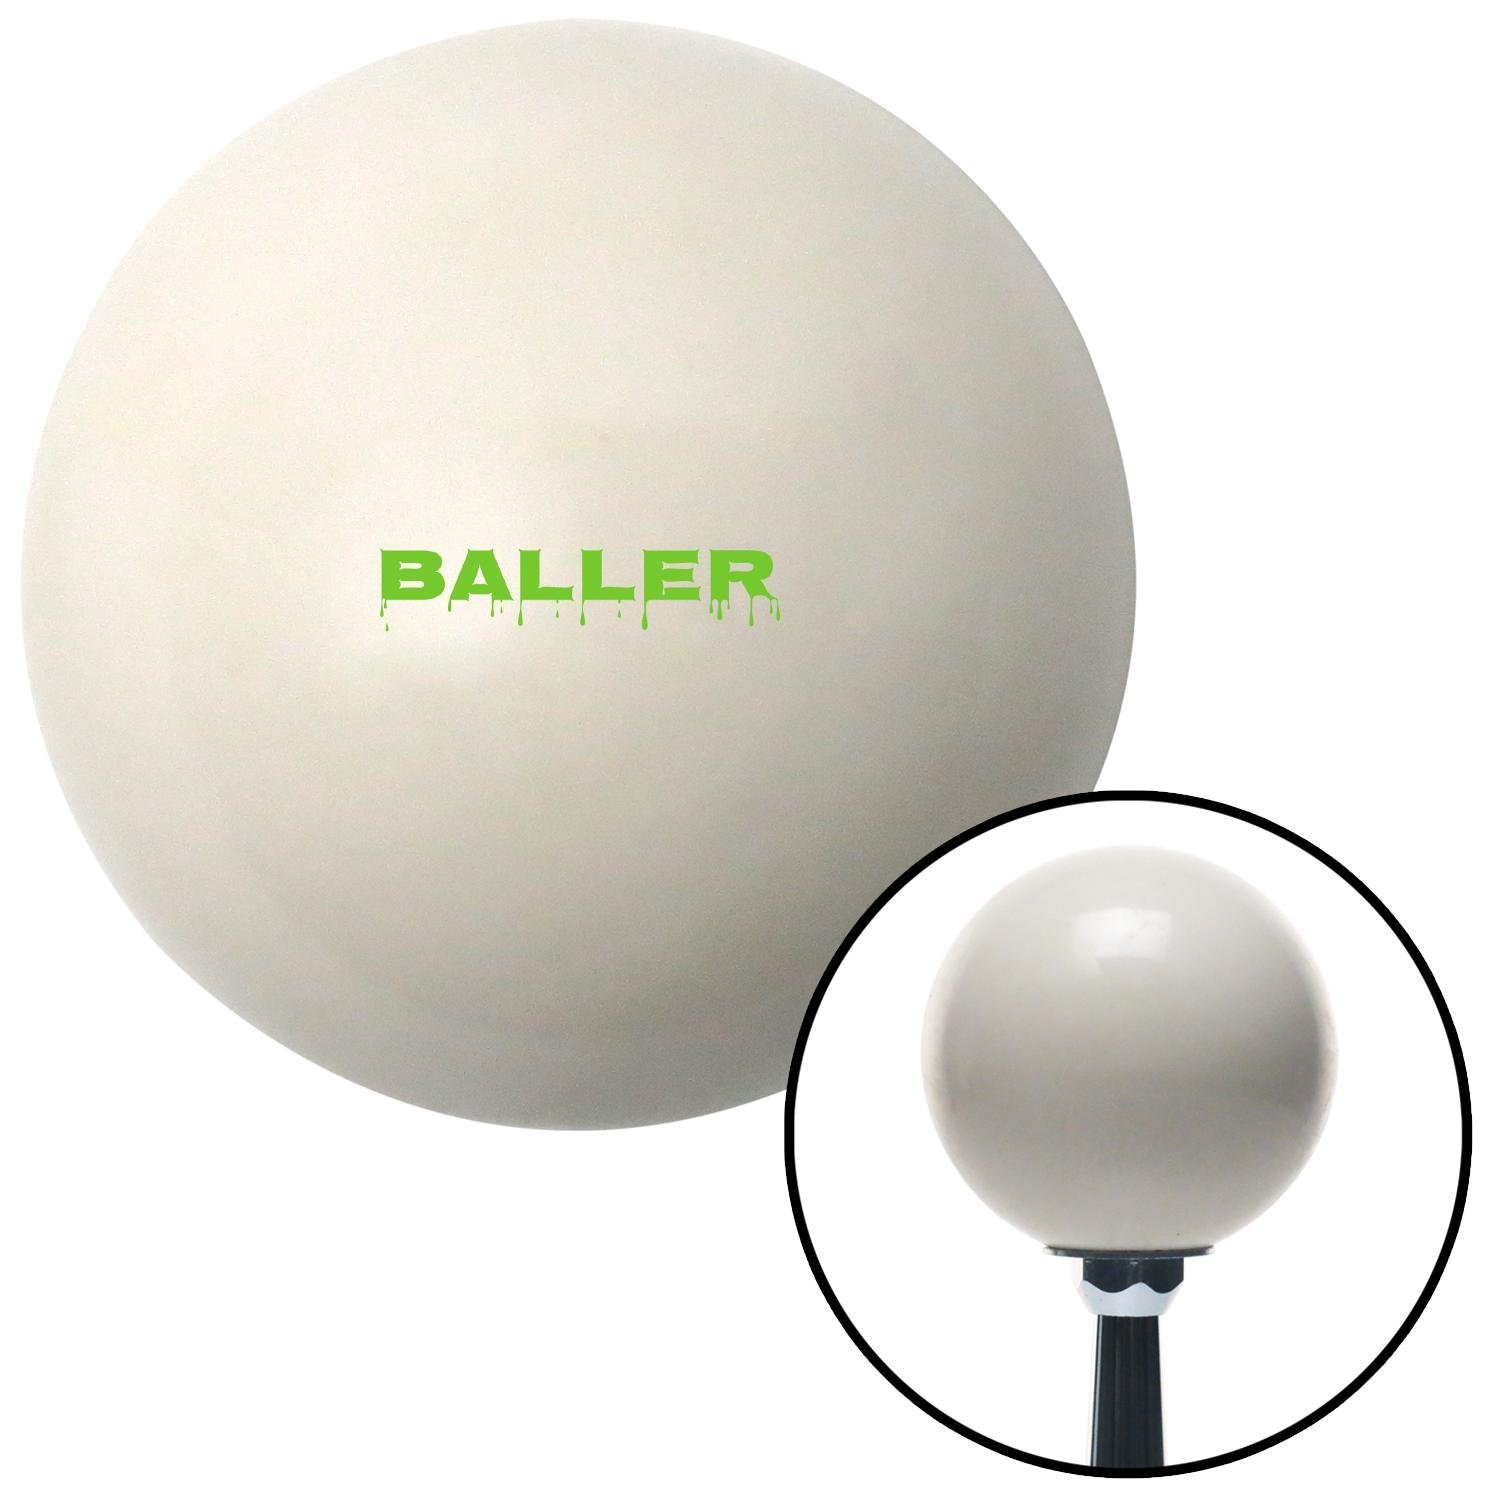 ASCSNX1590754 Green Baller Ivory with M16 x 1.5 Insert American Shifter 269722 Shift Knob